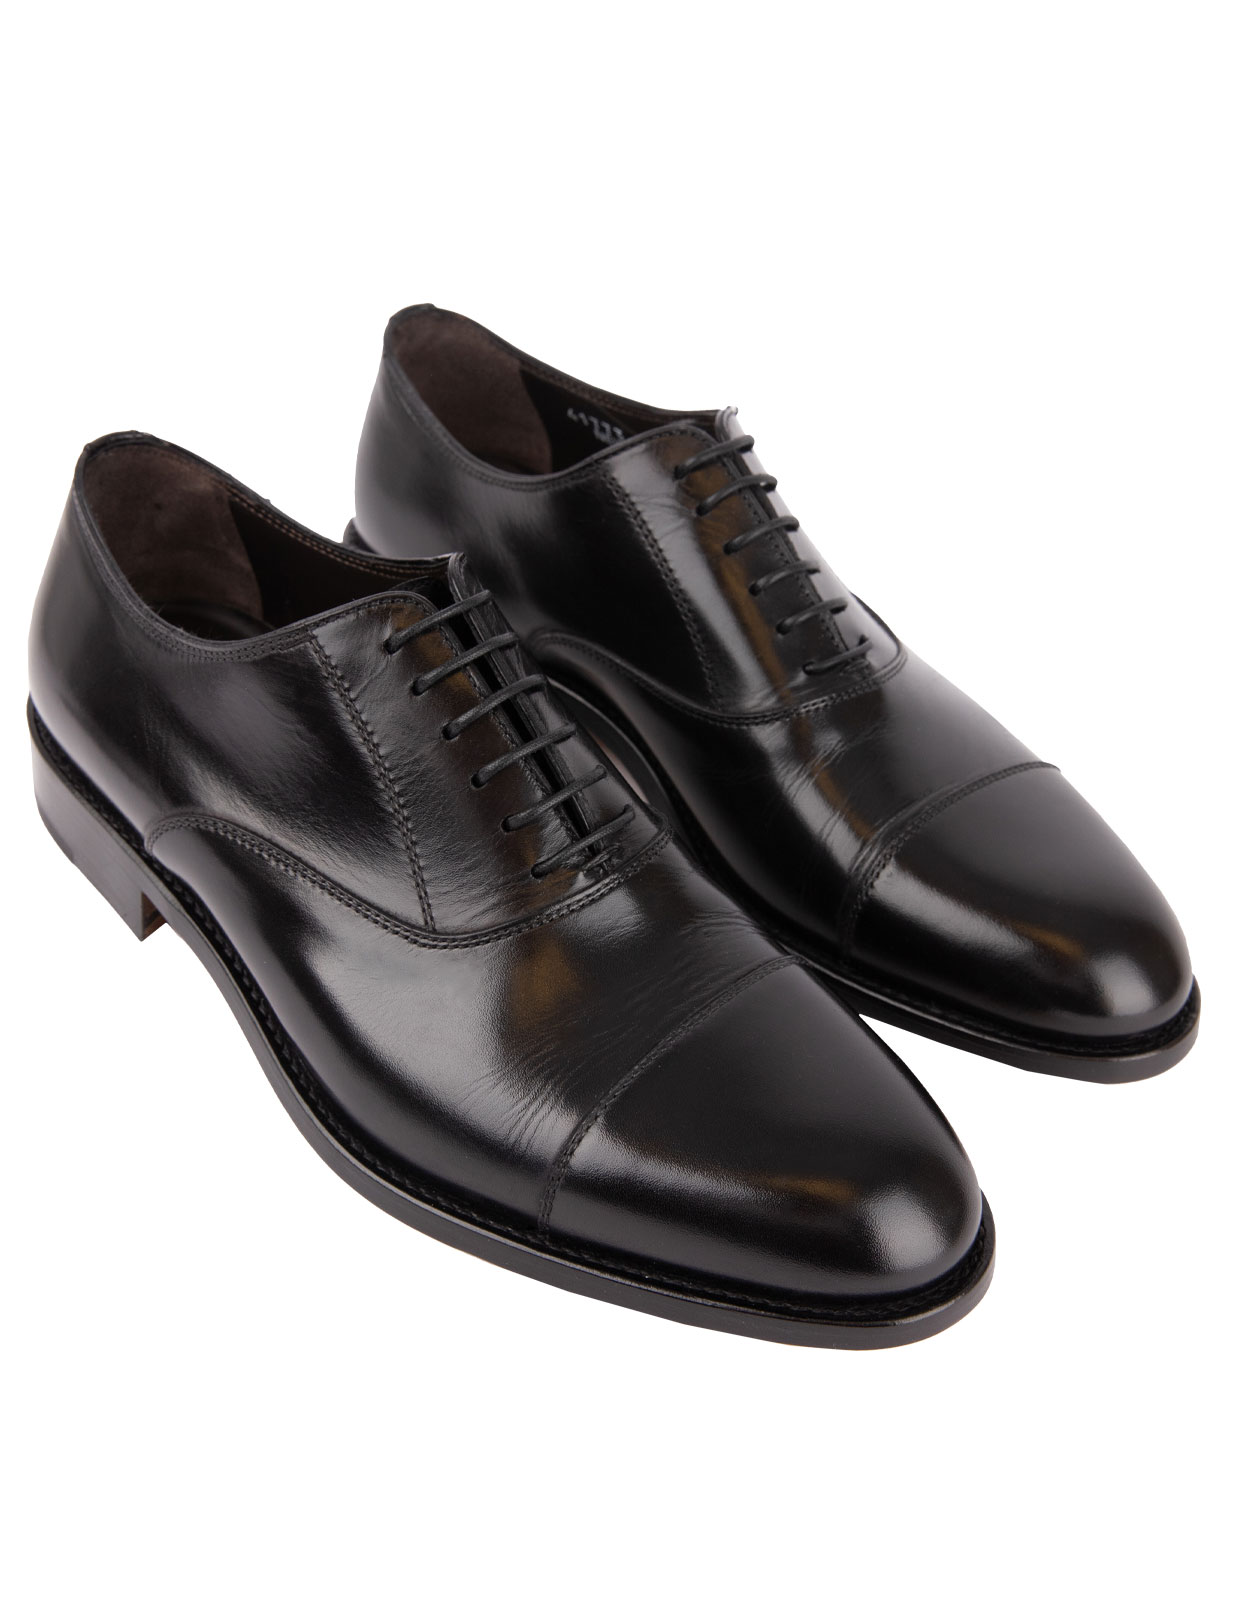 New York Oxford Shoes Calfskin Black